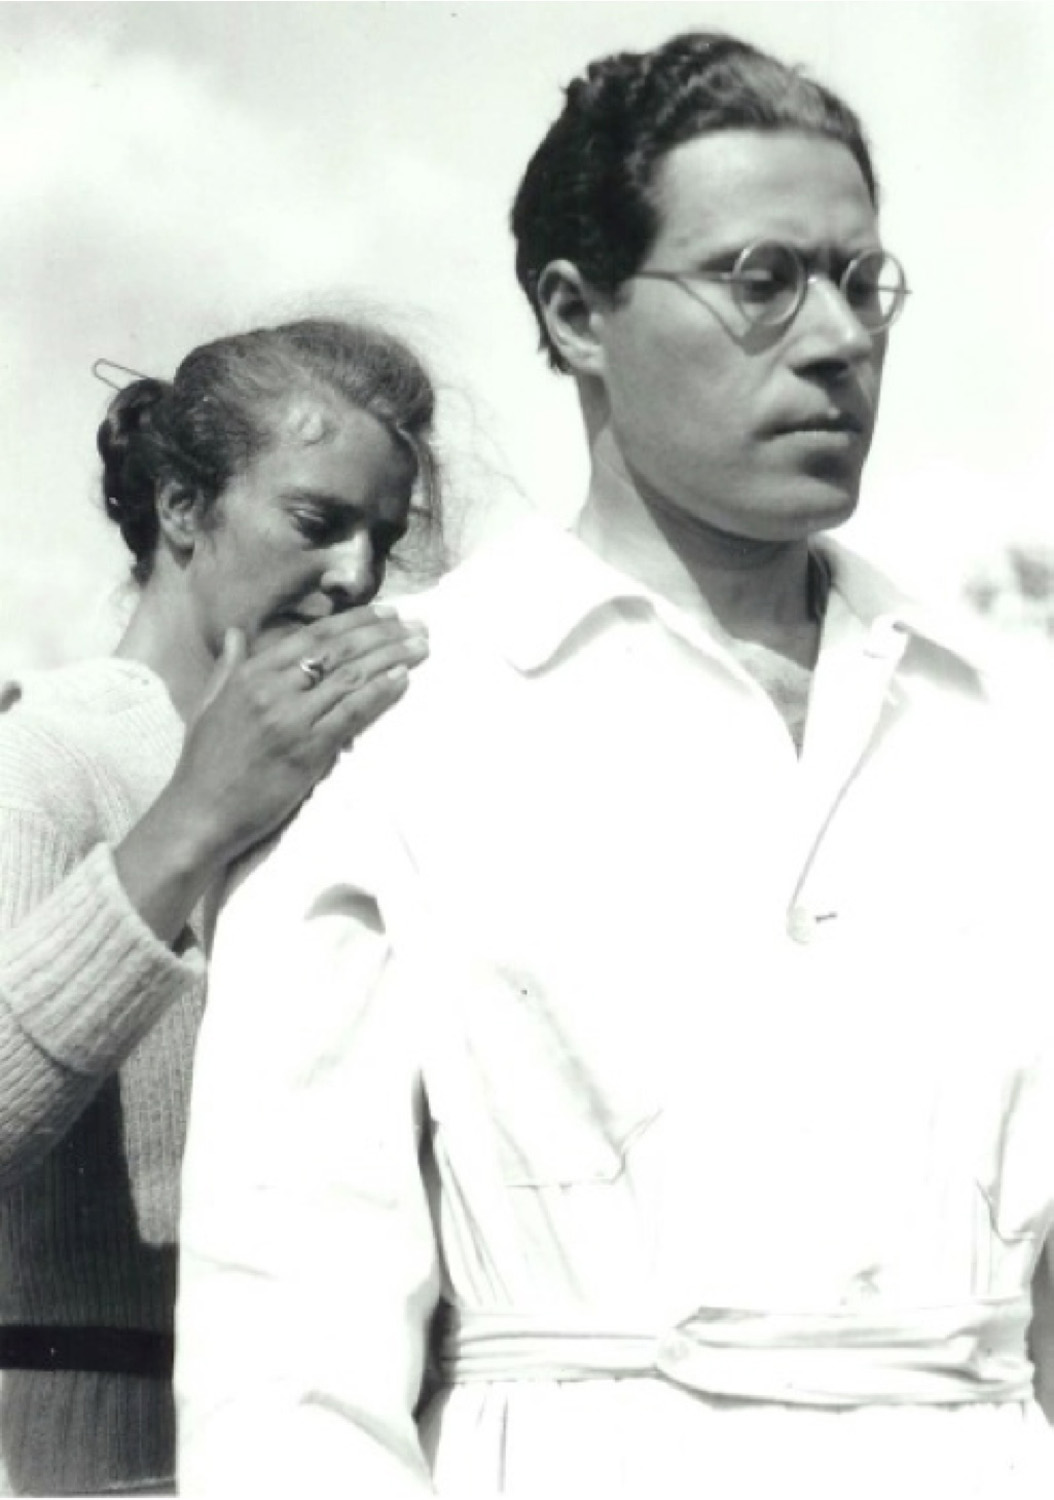 Photographer unknown, Moholy-Nagy and an unidentified woman, n.d. (ca. late 1920s), Bauhaus-Archiv, Museum fur Gestaltung, Berlin